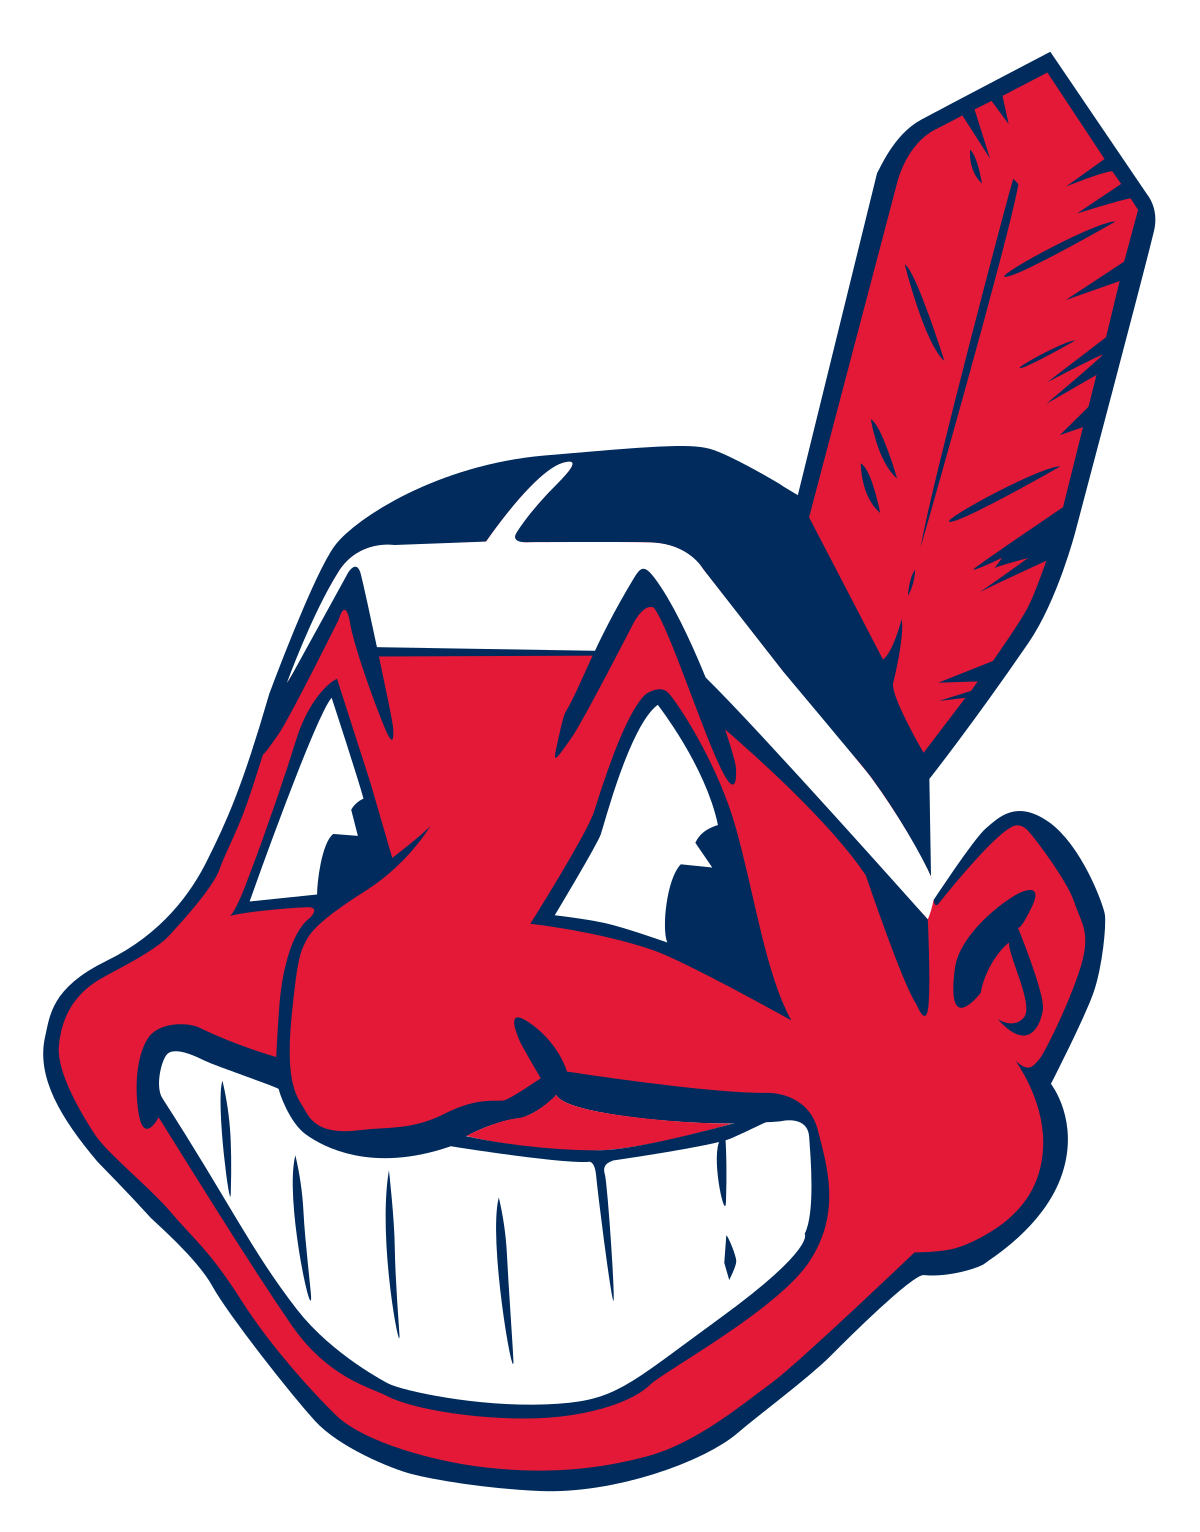 Extended clipart family indian. Chief wahoo wikipedia